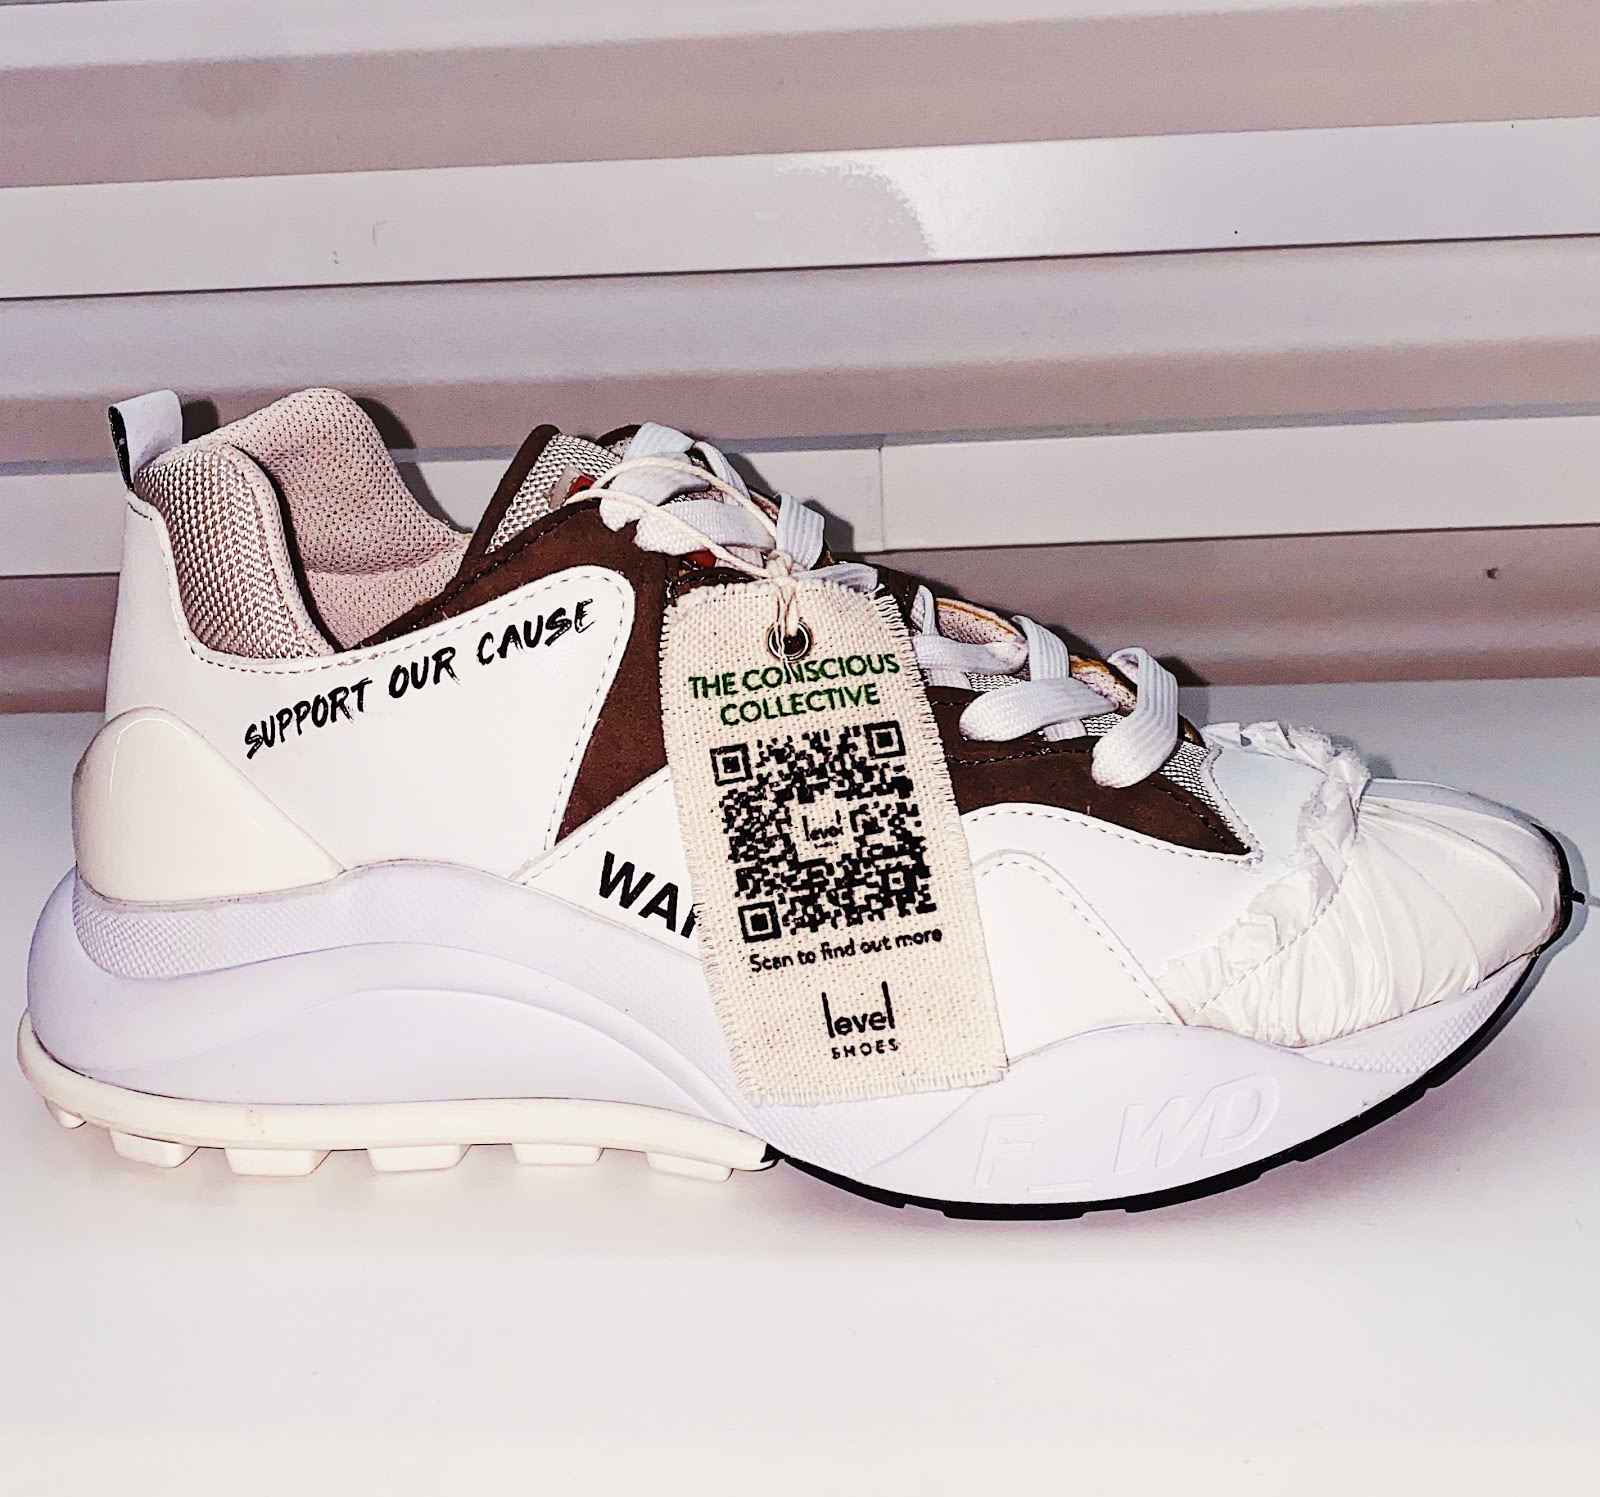 code on a material tag on sports shoes